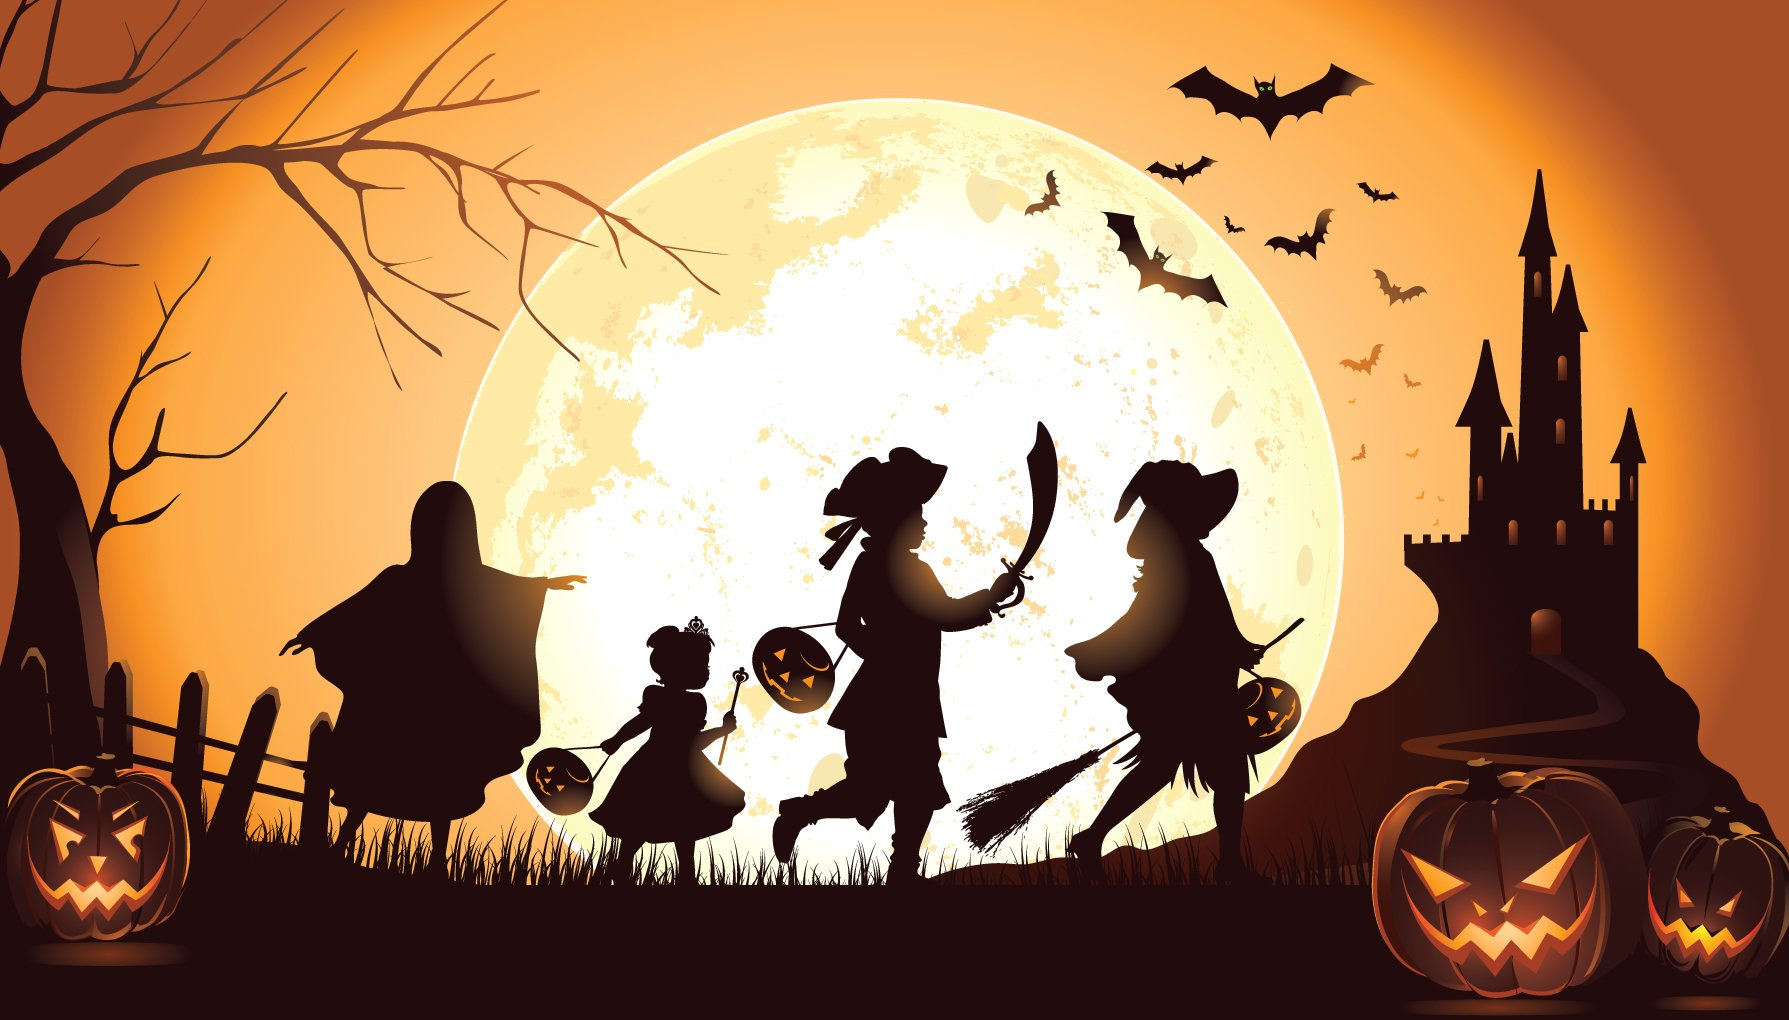 Halloween Trick Or Treat Silhouette.Halloween Trick Or Treat Event Coming Up Tais Naples